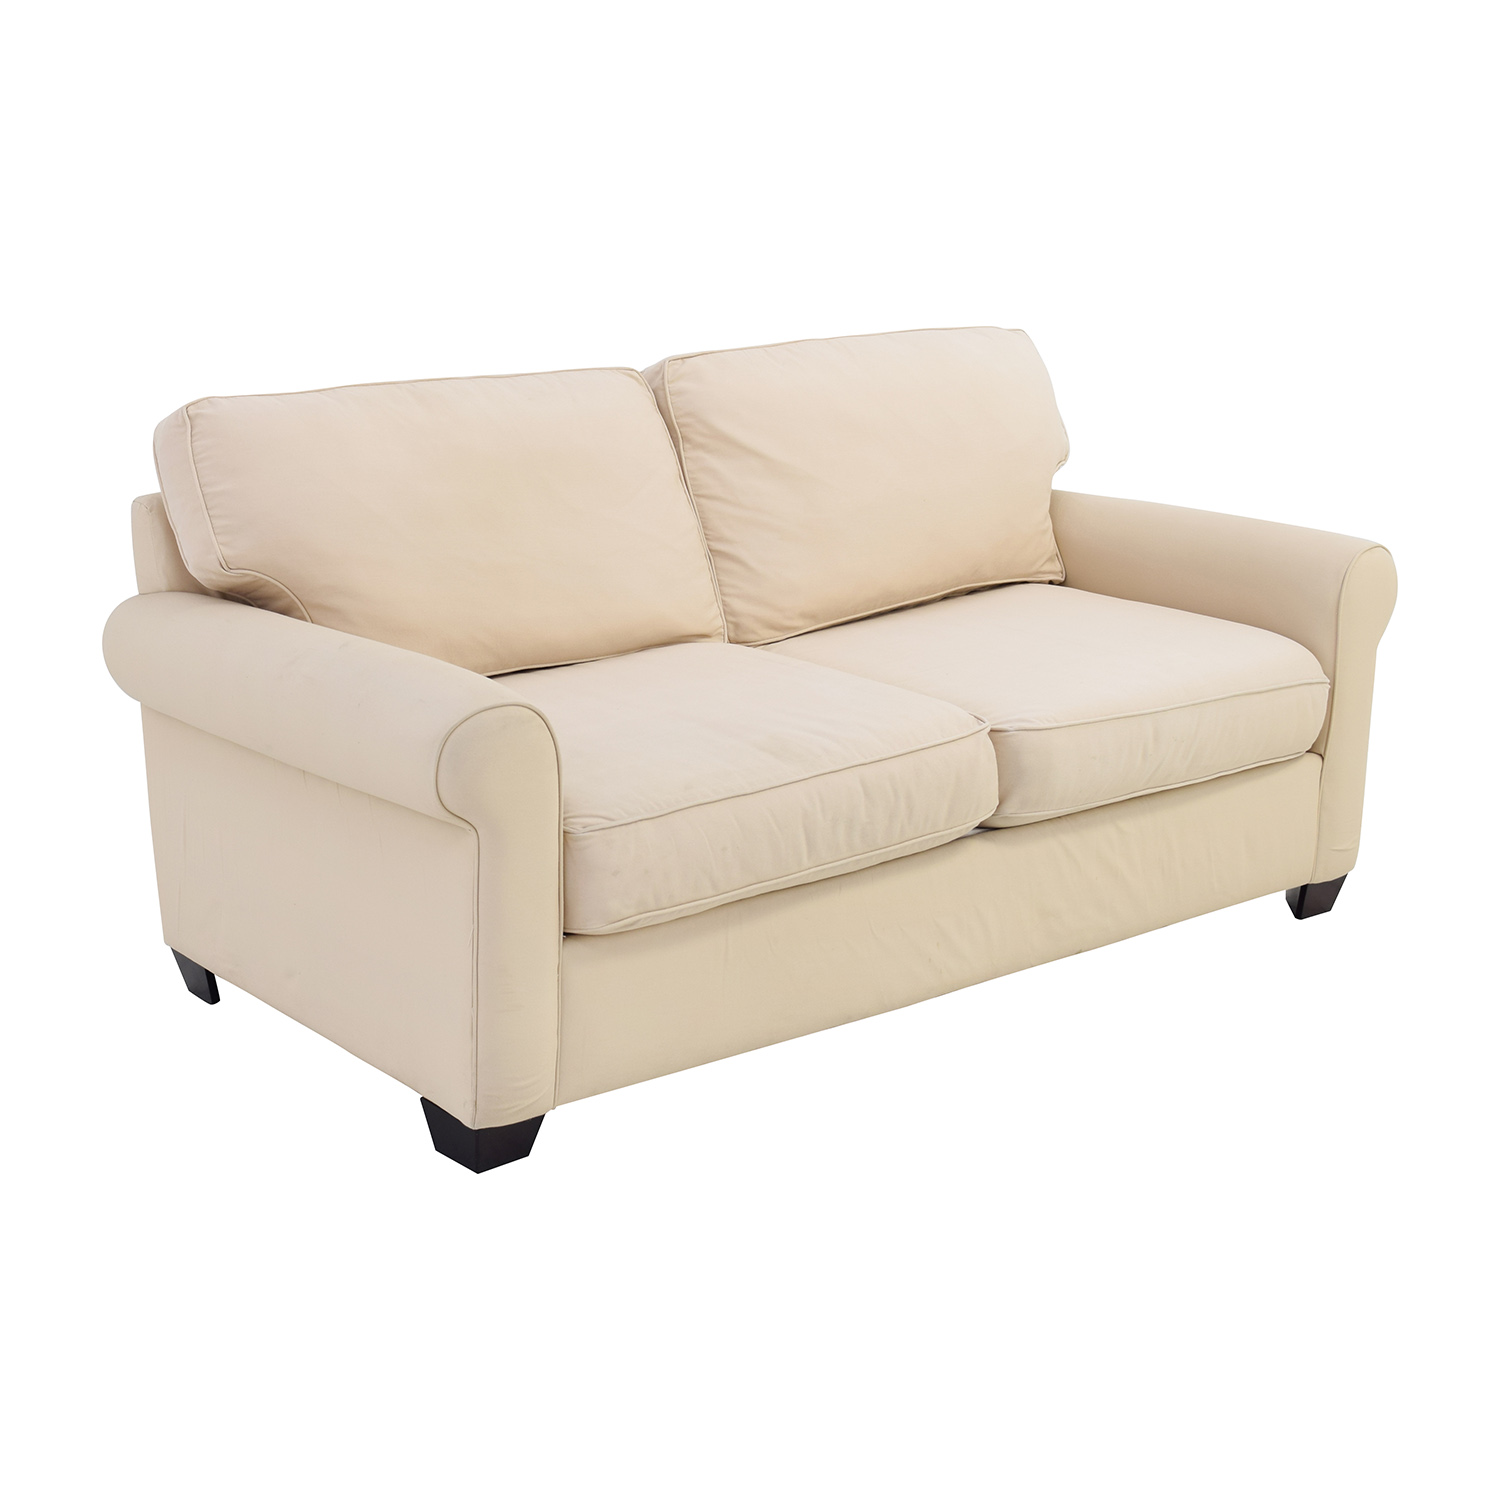 ... Pottery Barn Buchanan Roll Arm Beige Sofa Sale ...